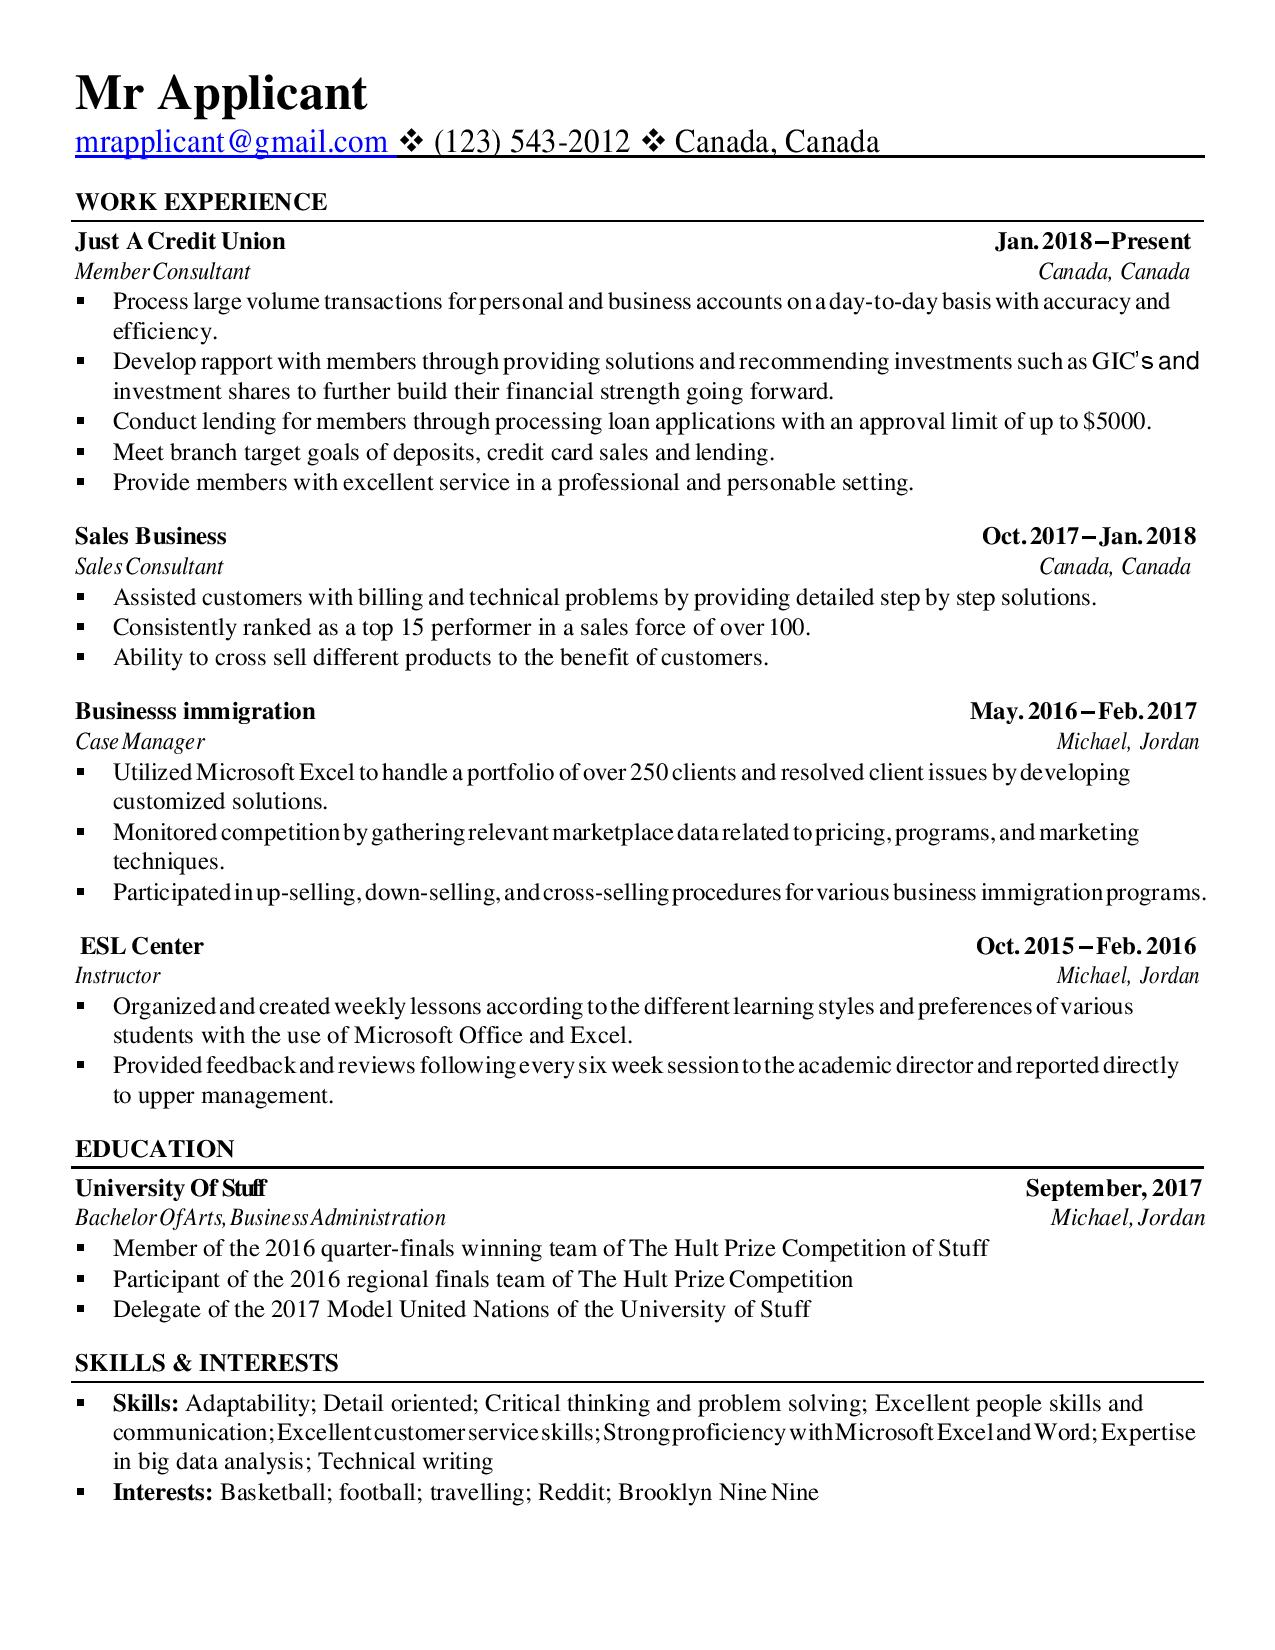 years old trying to find jobs in accounting and then work towards my cpa going forward Resume Resume Interests Reddit